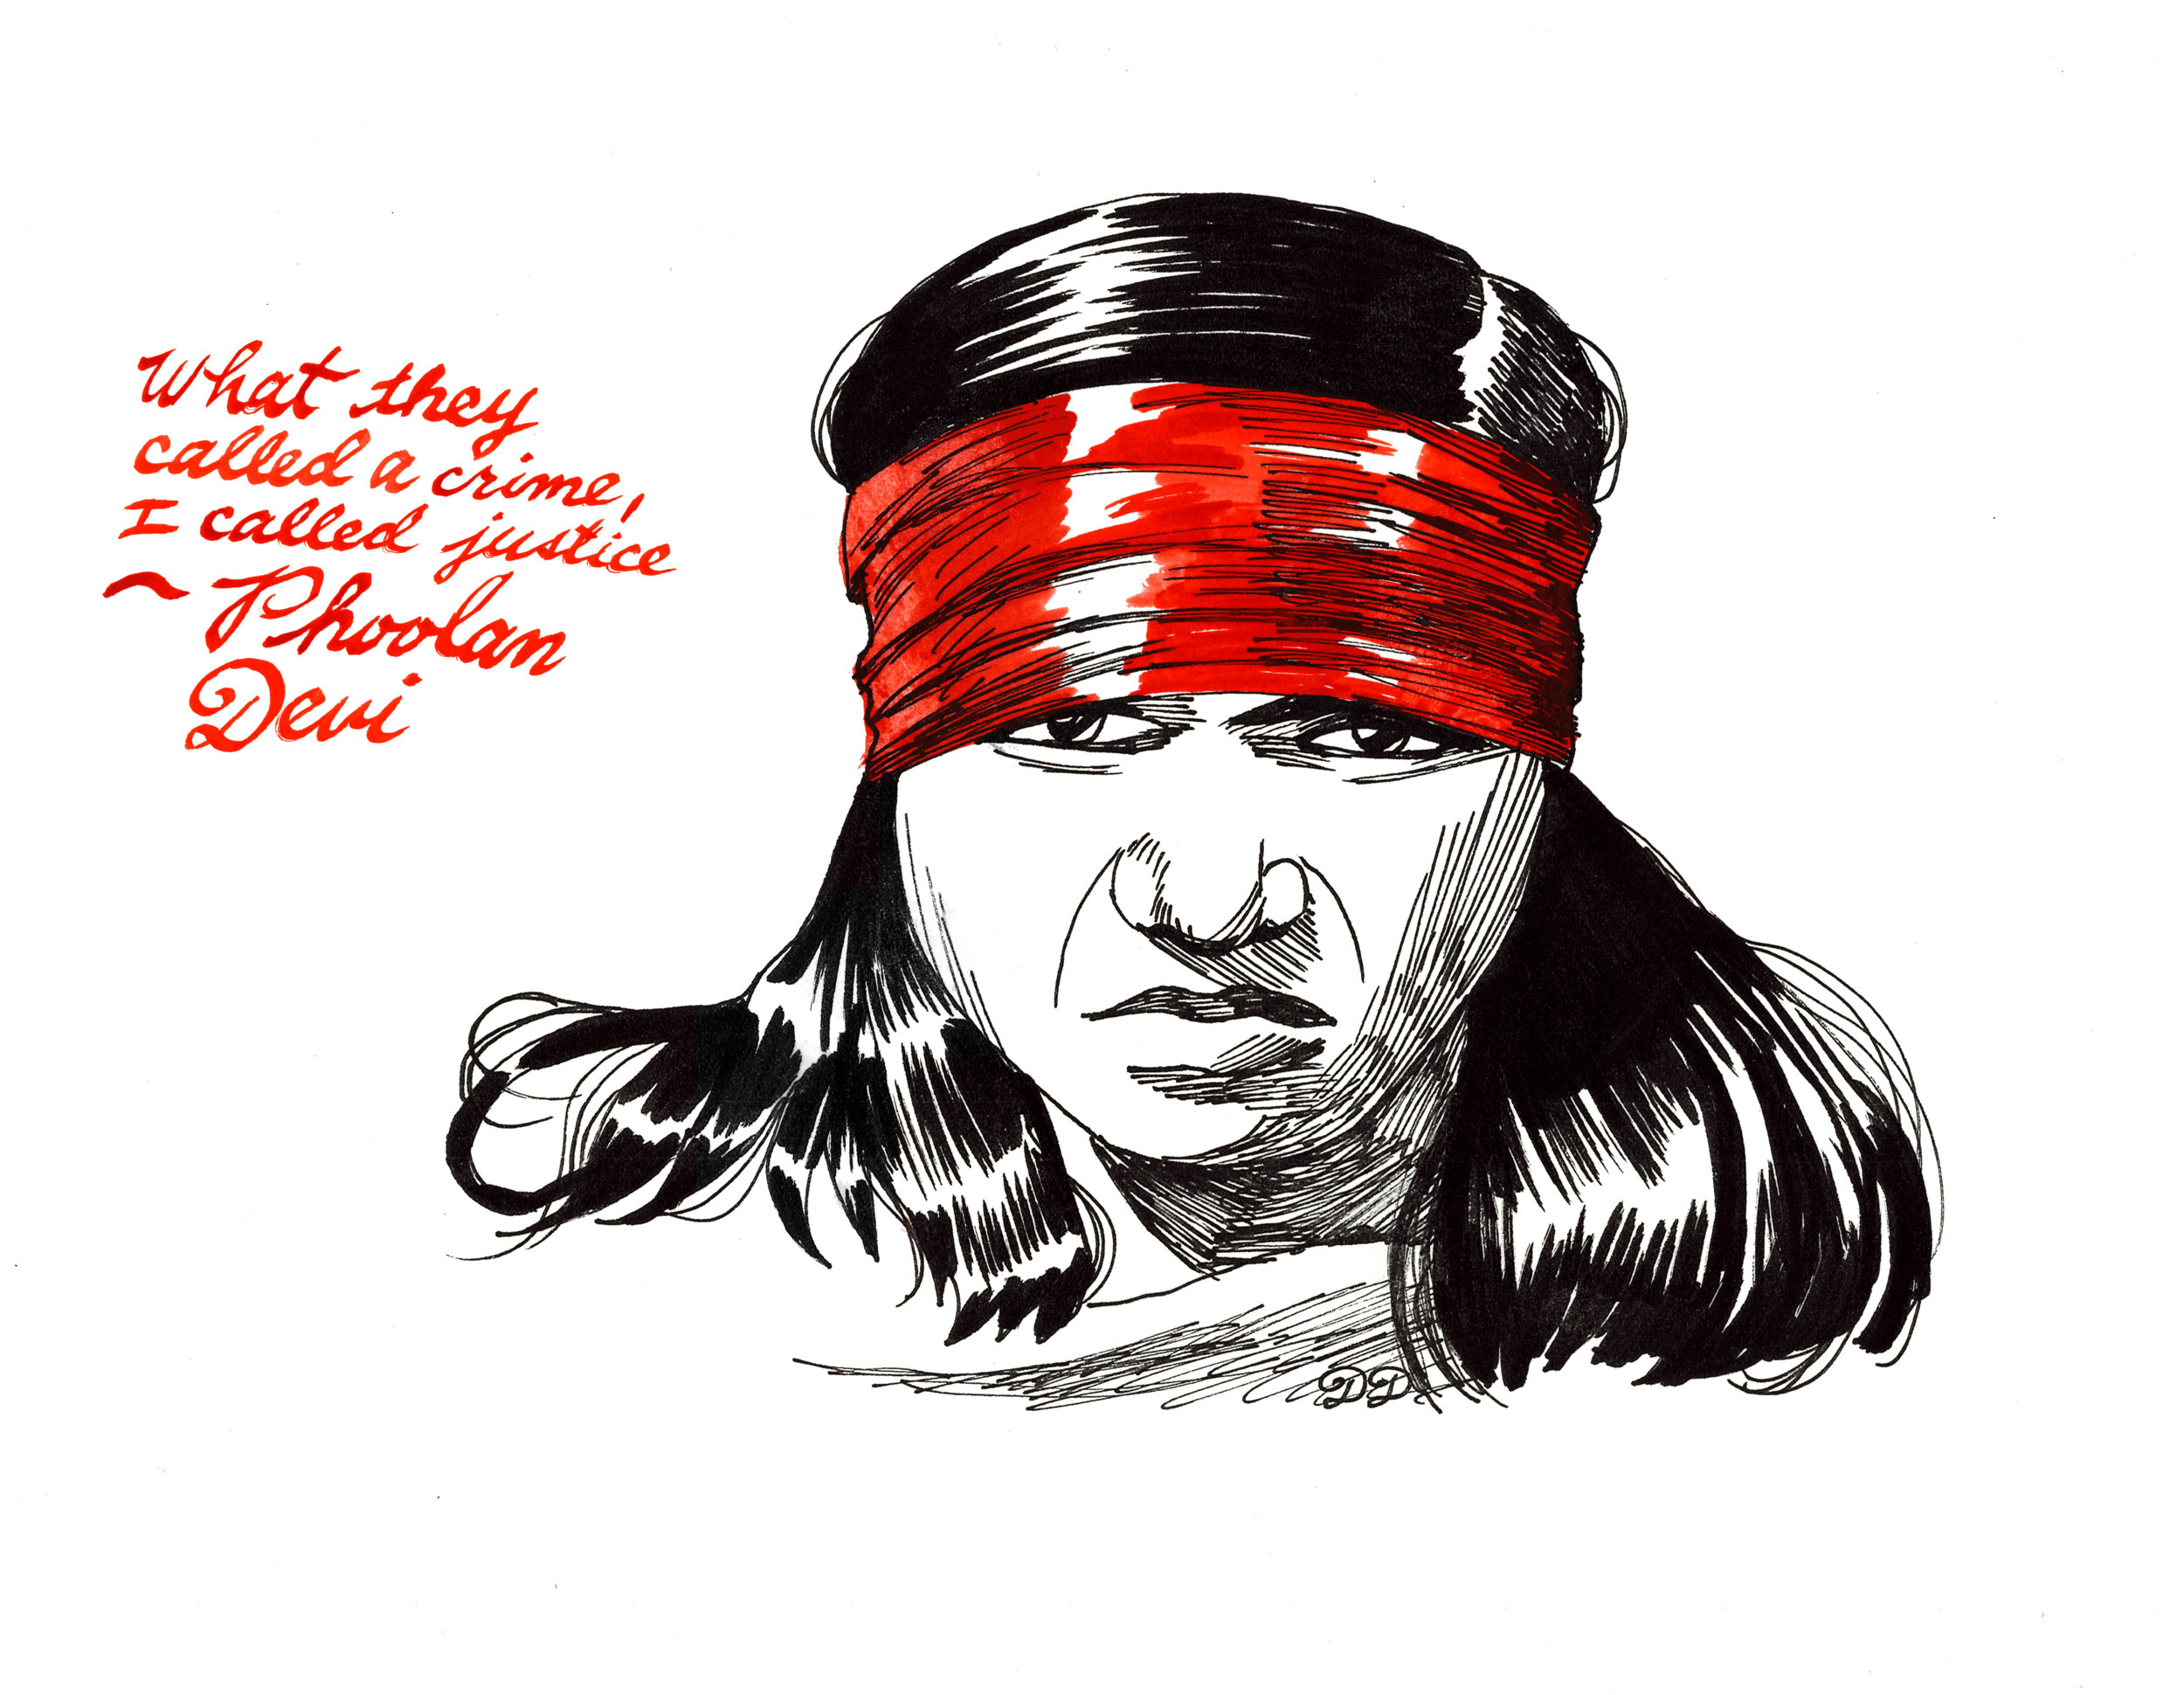 "Phoolan Devi #1 - A print of the northern Indian bandit queen, Phoolan Devi, the subject of Criminal Broads episode 11. 5.5"" x 8.5"". $10 + $2 shipping. Buy on Etsy, or send $12 and your shipping address via Venmo (@tori-telfer), or Paypal/ChaseQuickpay (toritelfer@gmail.com)."